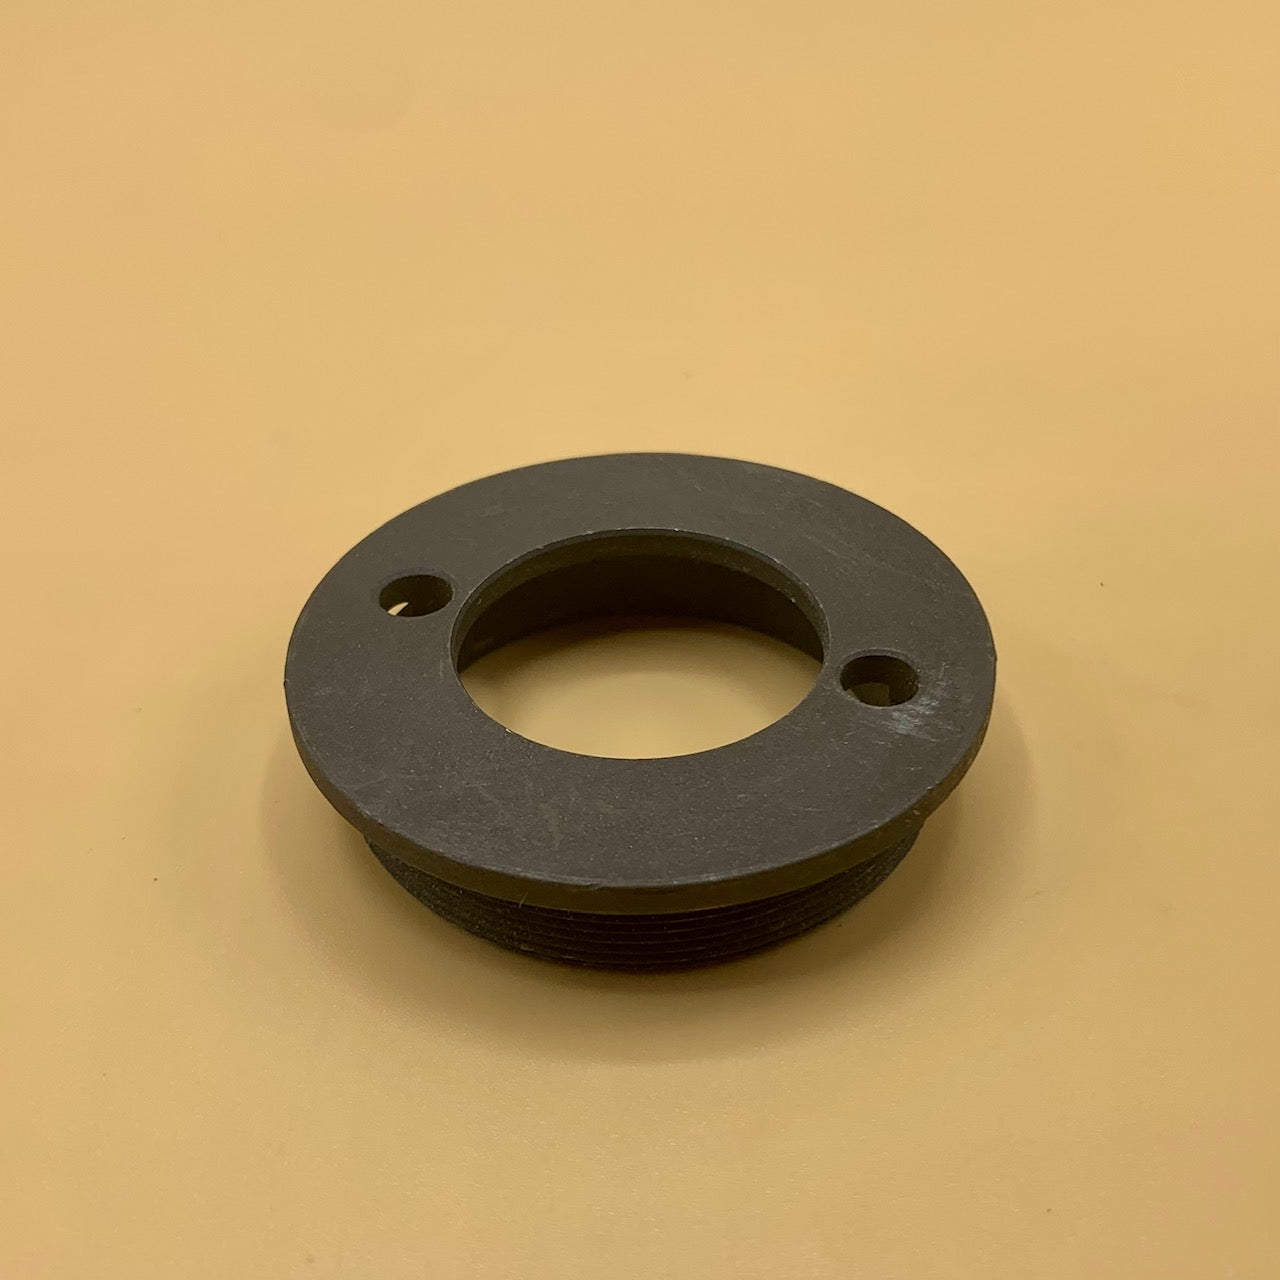 Koni Gland Nut for 240, 700, and 900 Strut Housing